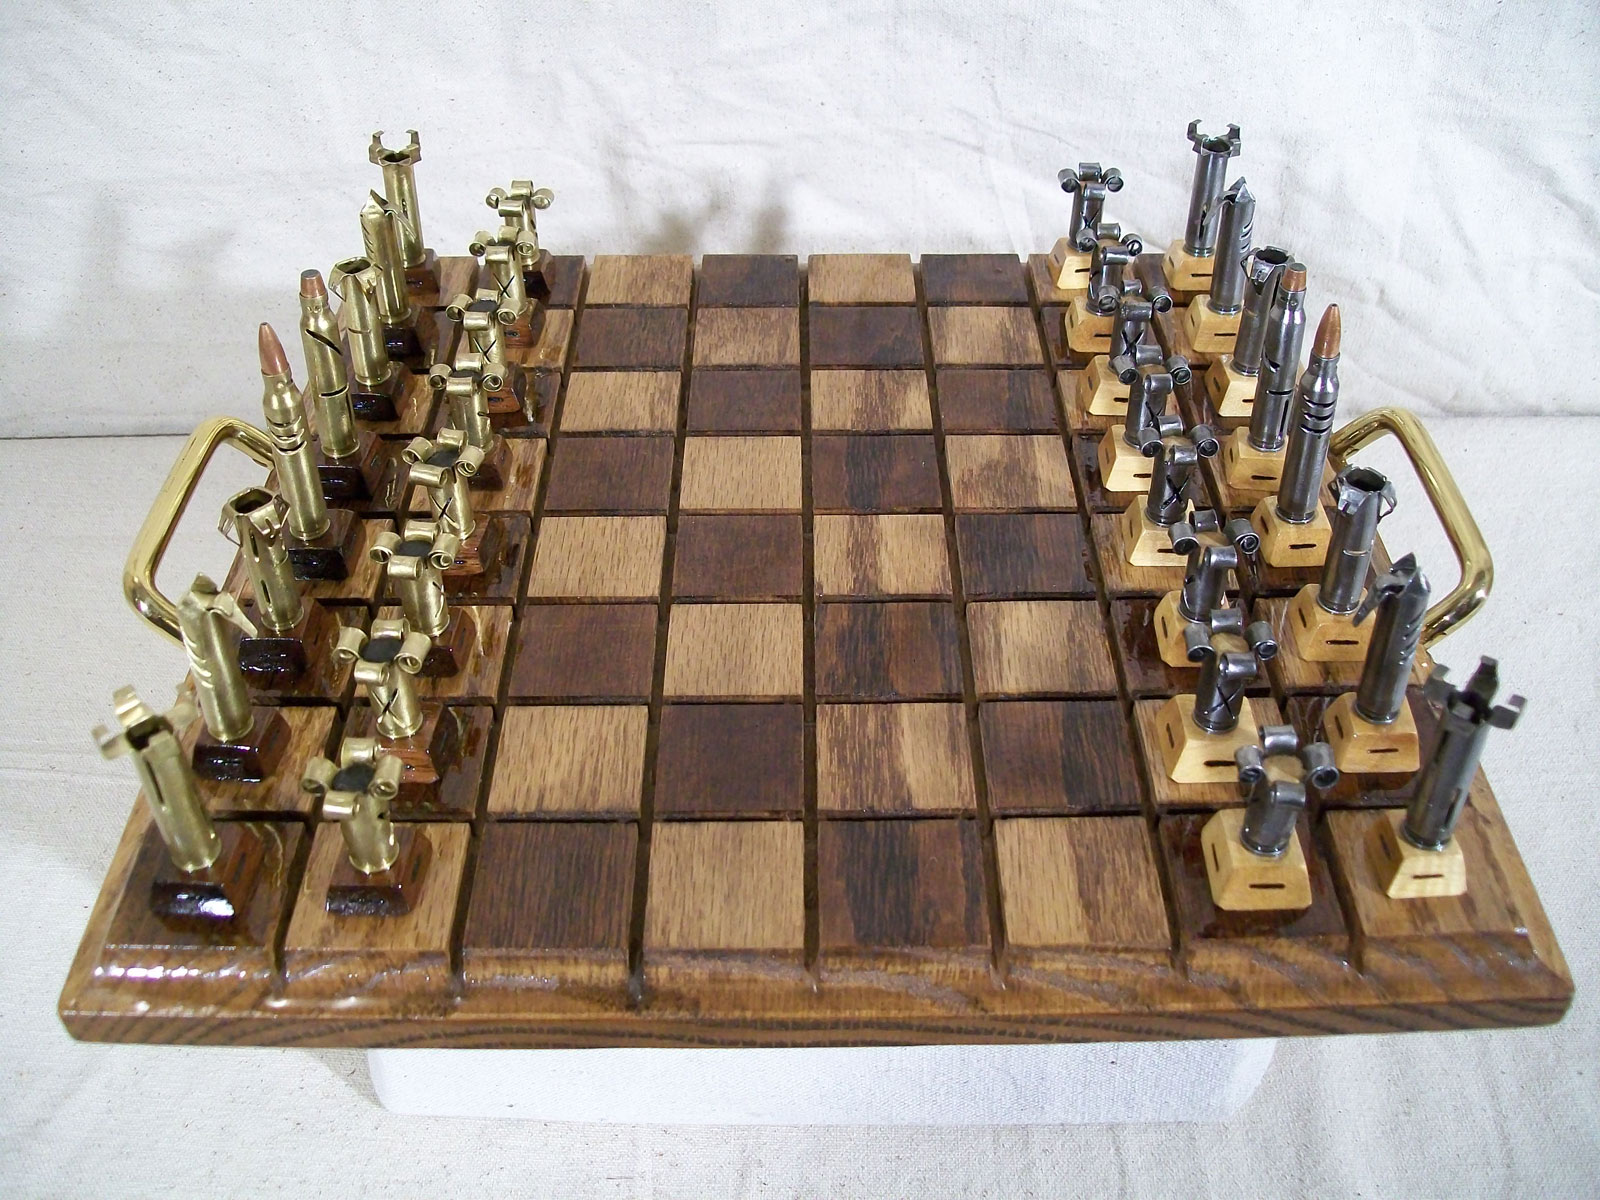 Caliber .223 - Bullet Chess set